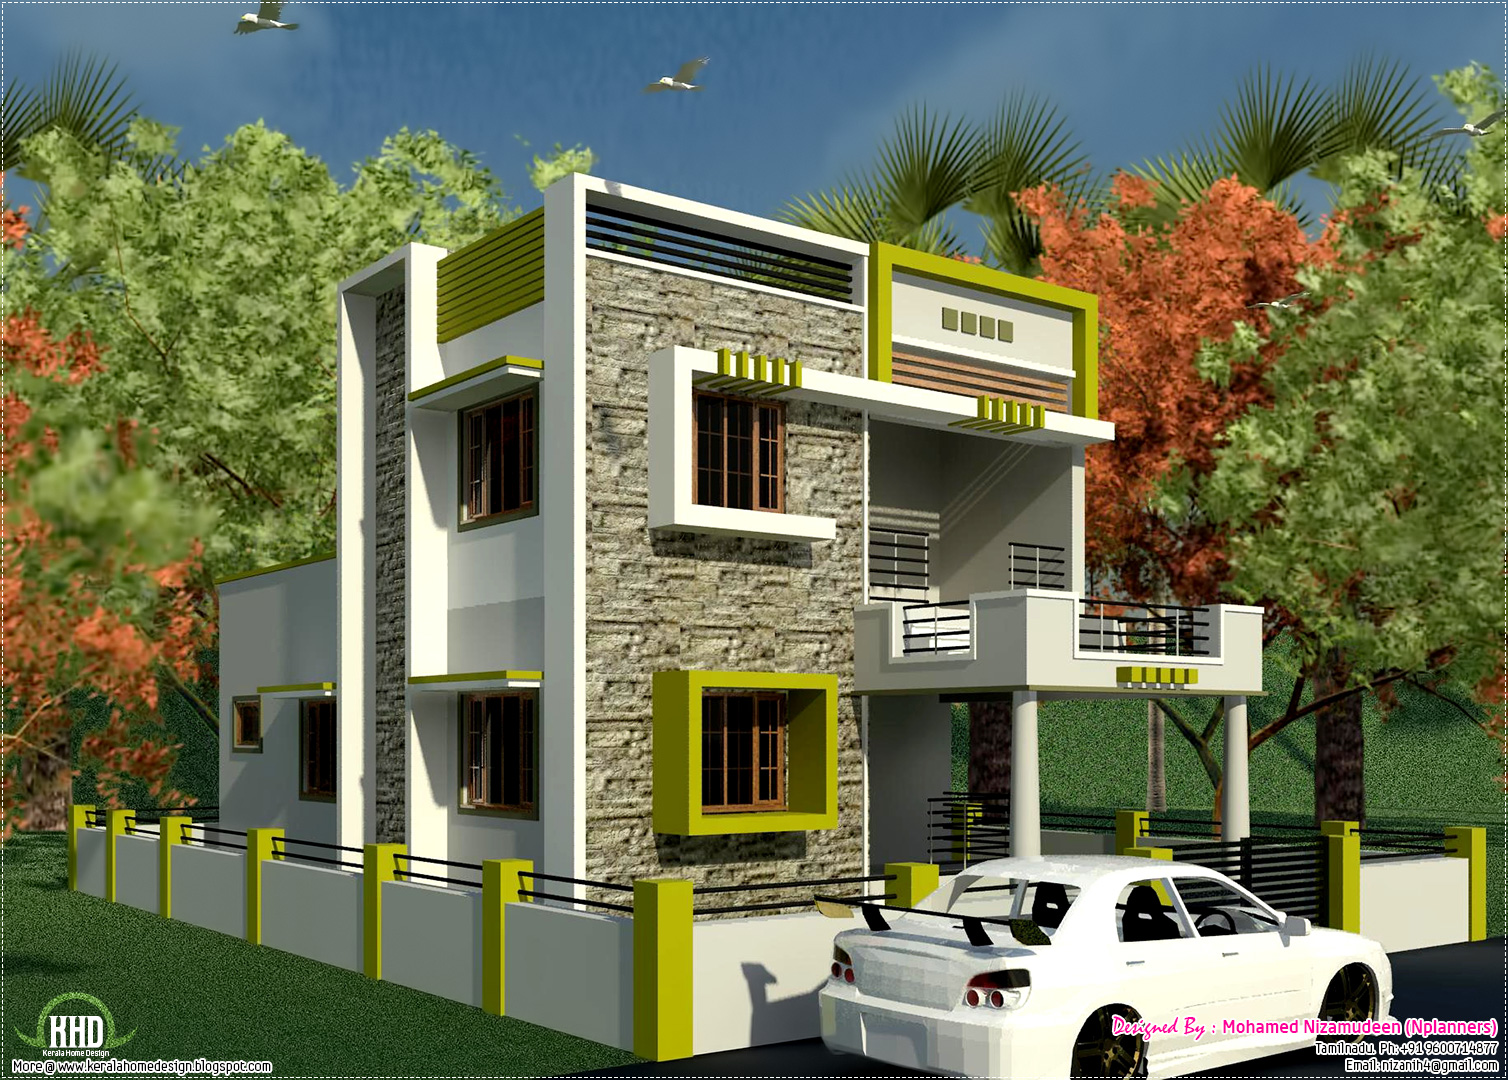 South indian style new modern 1460 sq feet house design for 2 bedroom house plans in india